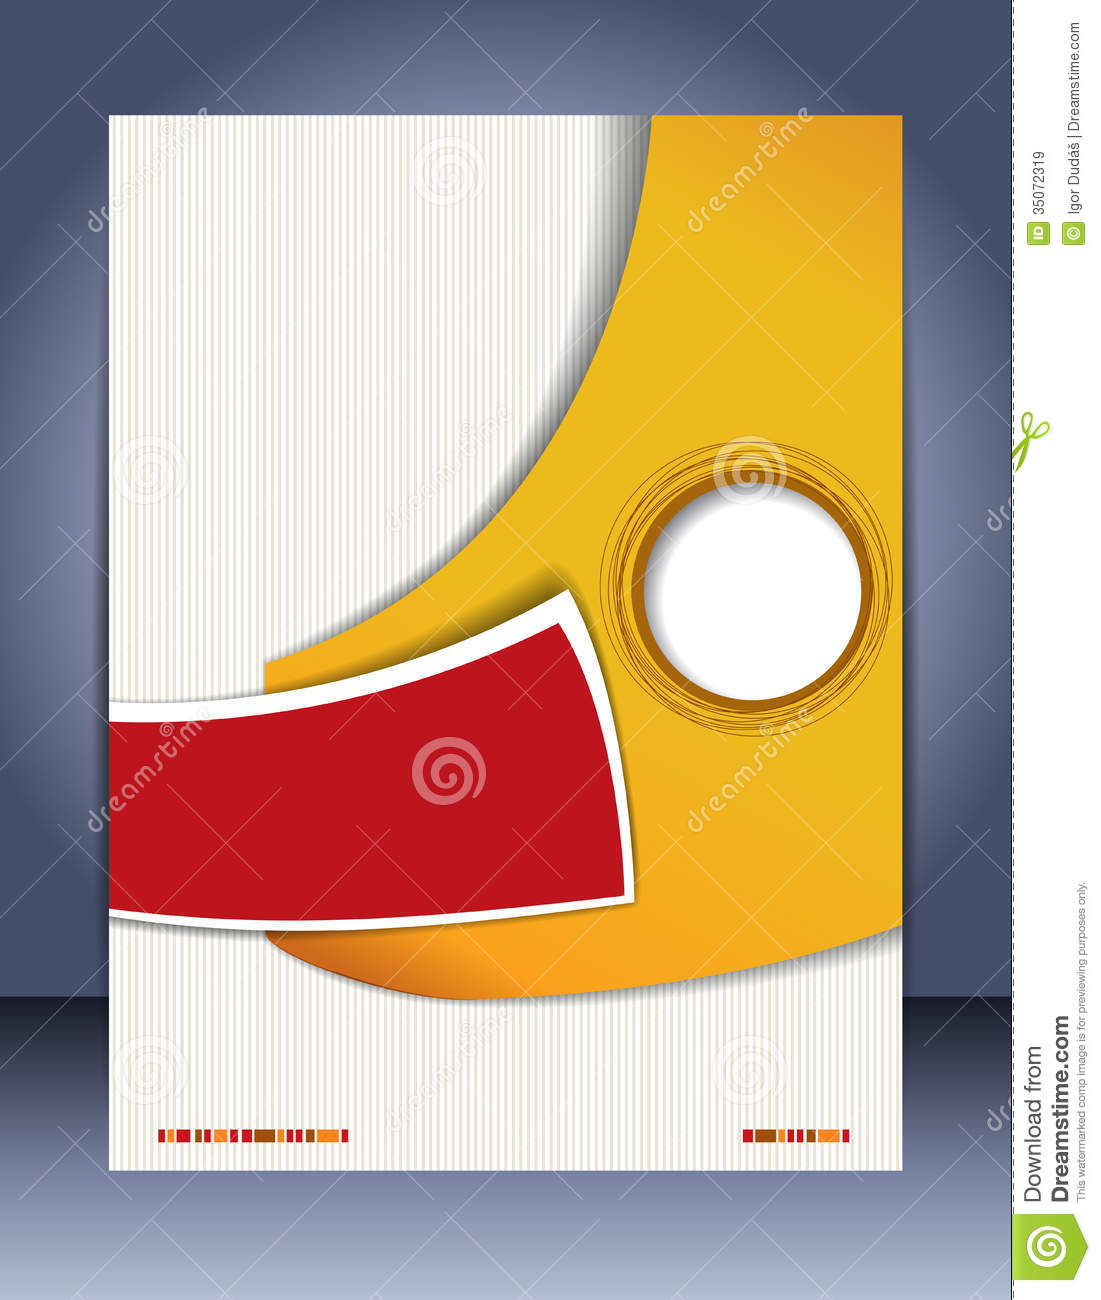 Brochure design royalty free stock images image 35072319 for Background brochure templates